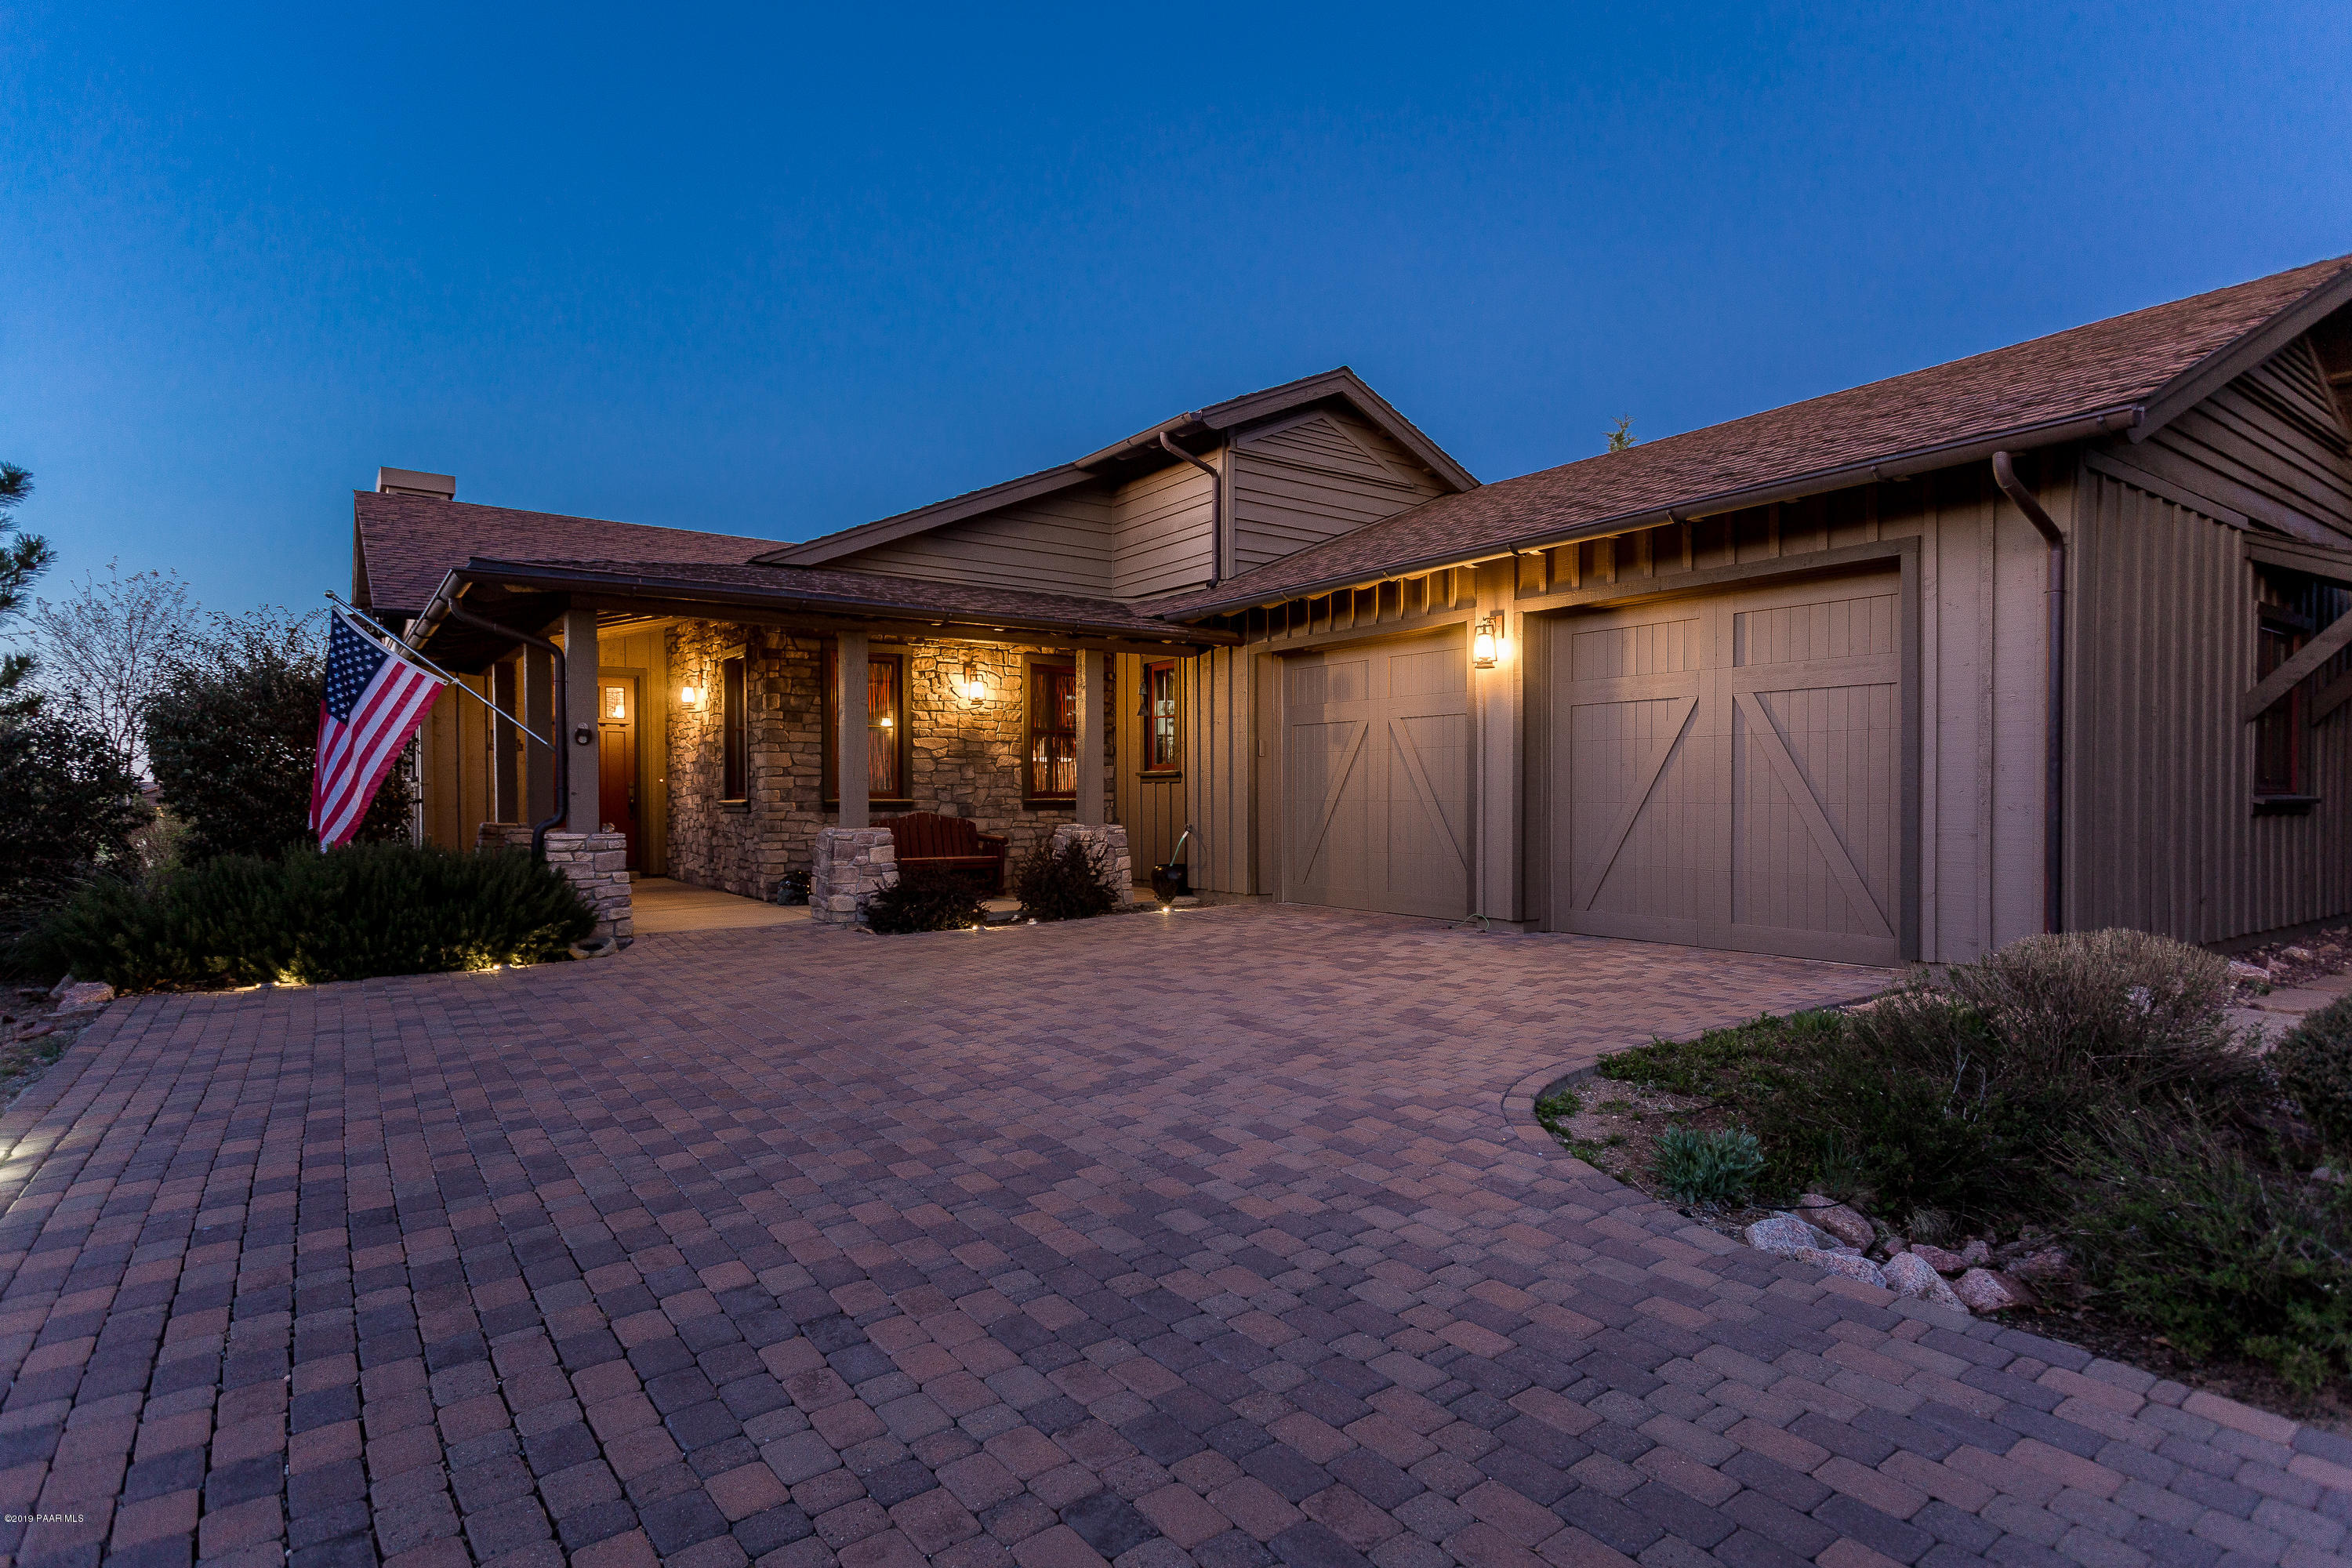 14788 N Holt Brothers Lane, Prescott, Arizona